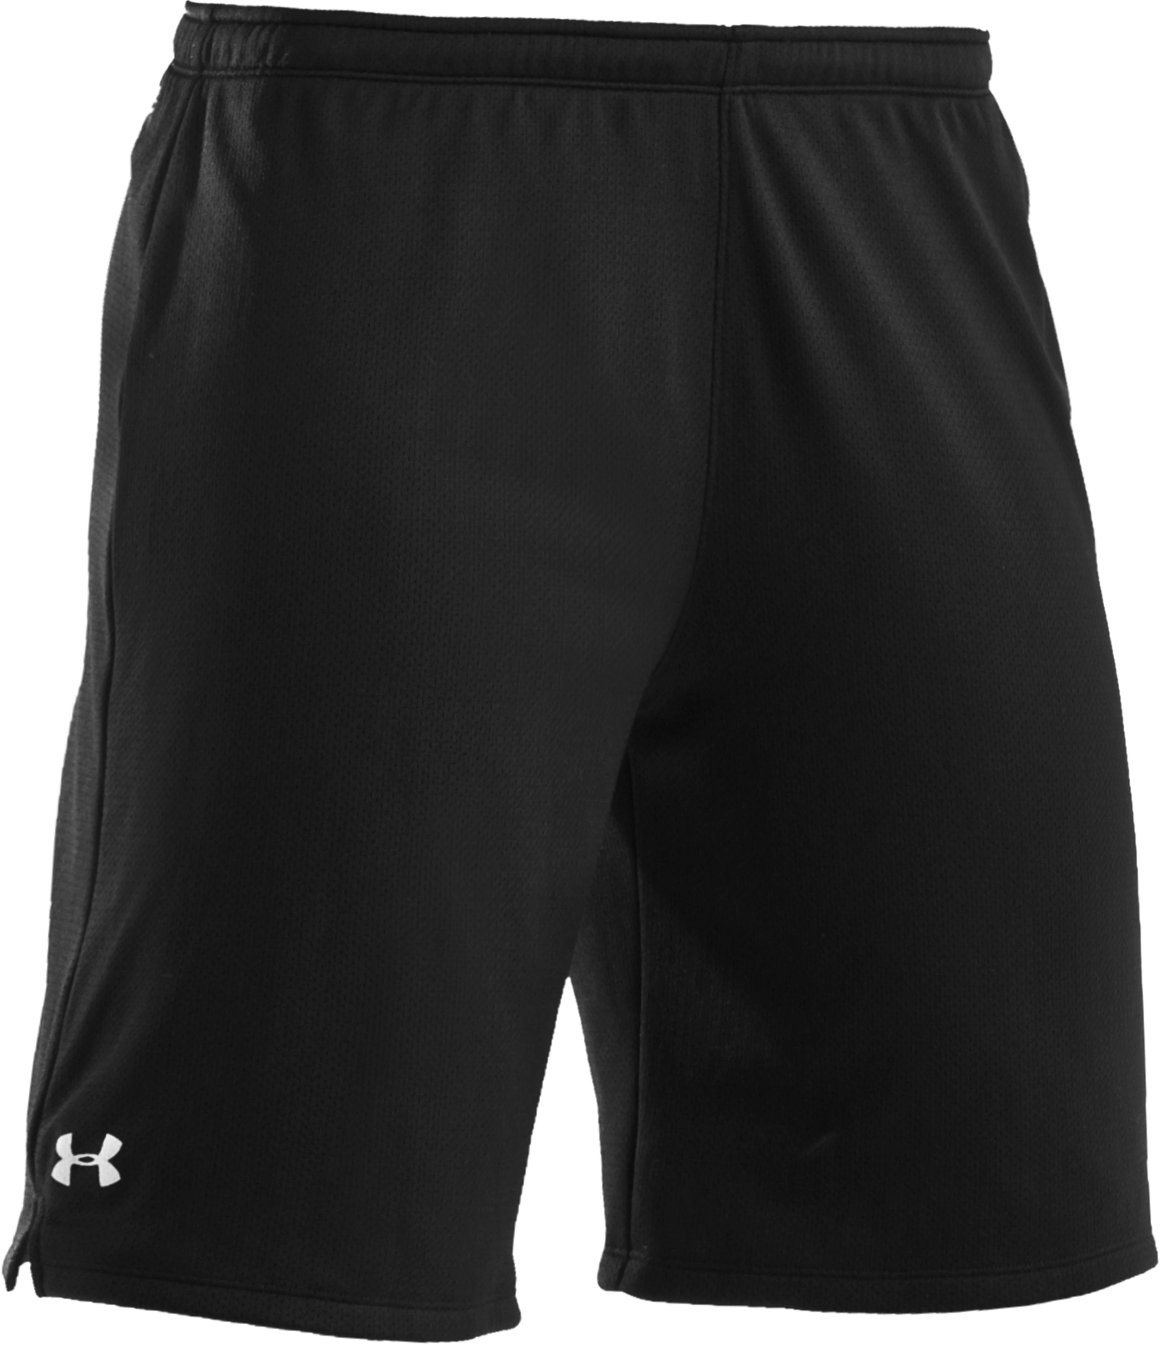 "Women's Dominate 8.5"" Short, Black , undefined"